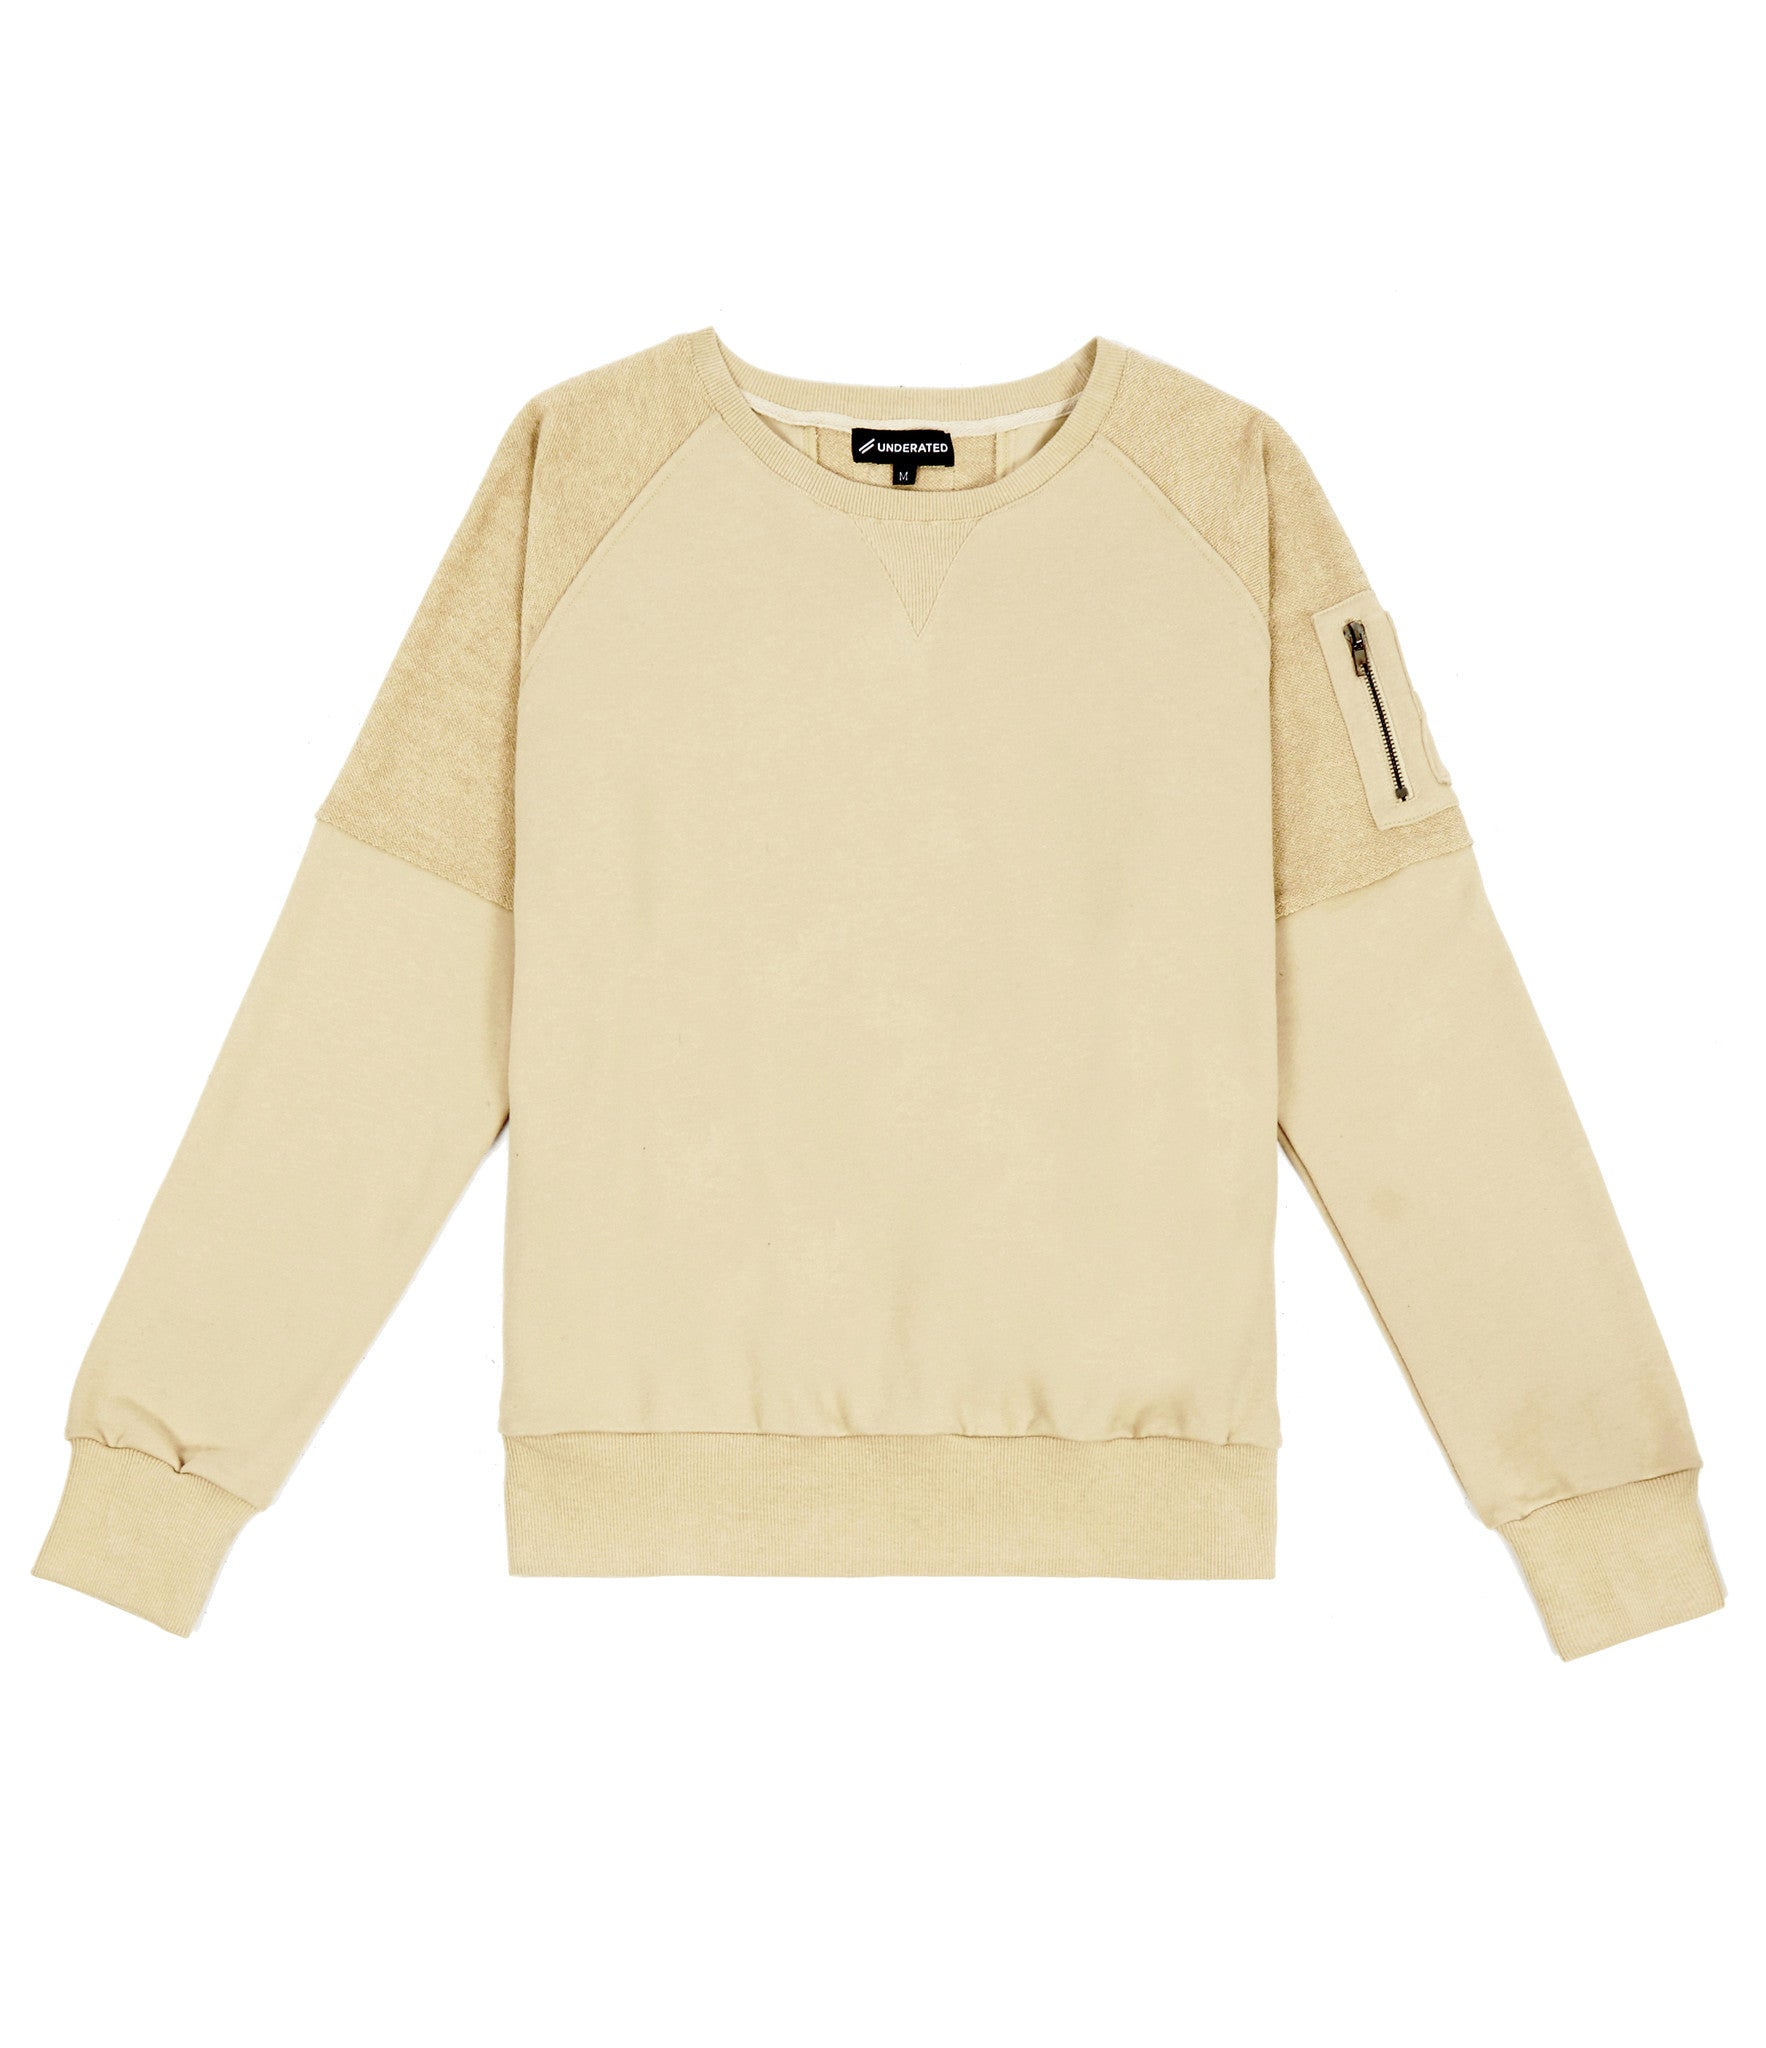 SW229 Oversized Utility Sweatshirt - Beige - underated london - underatedco - 1